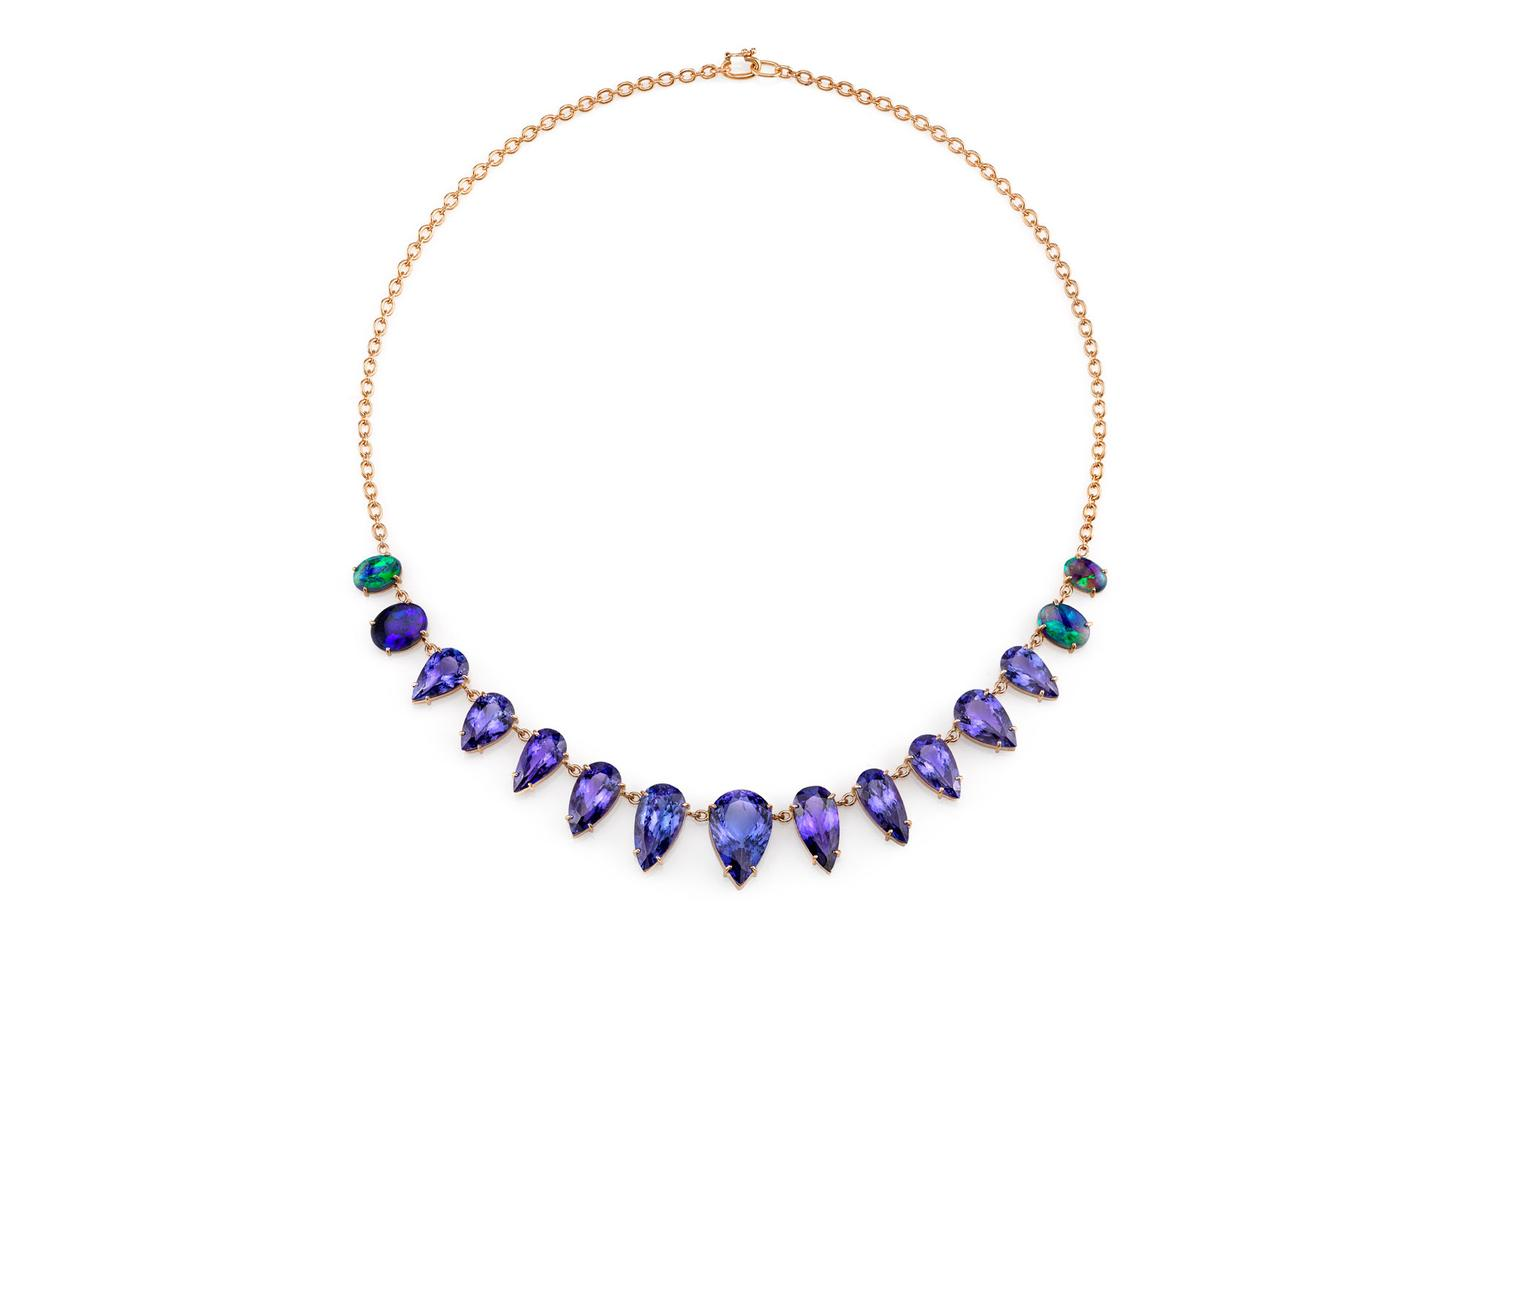 Irene-Neuwrith-Tanzanite-Necklace-Zoom